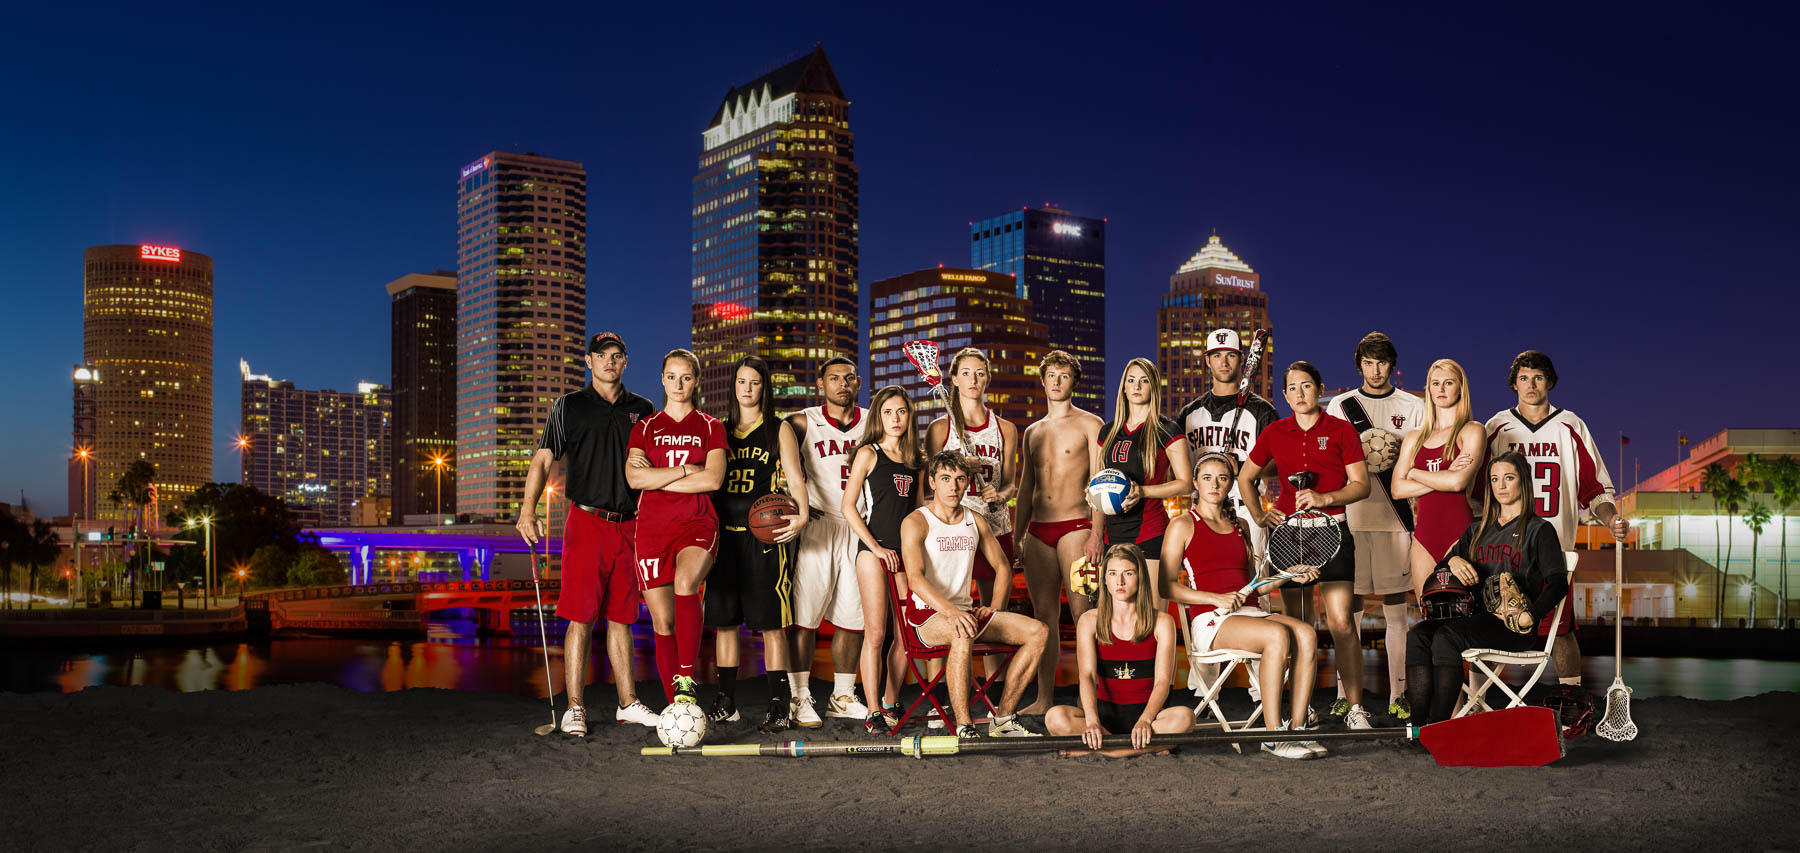 Captains of University of Tampa athletic teams 2014